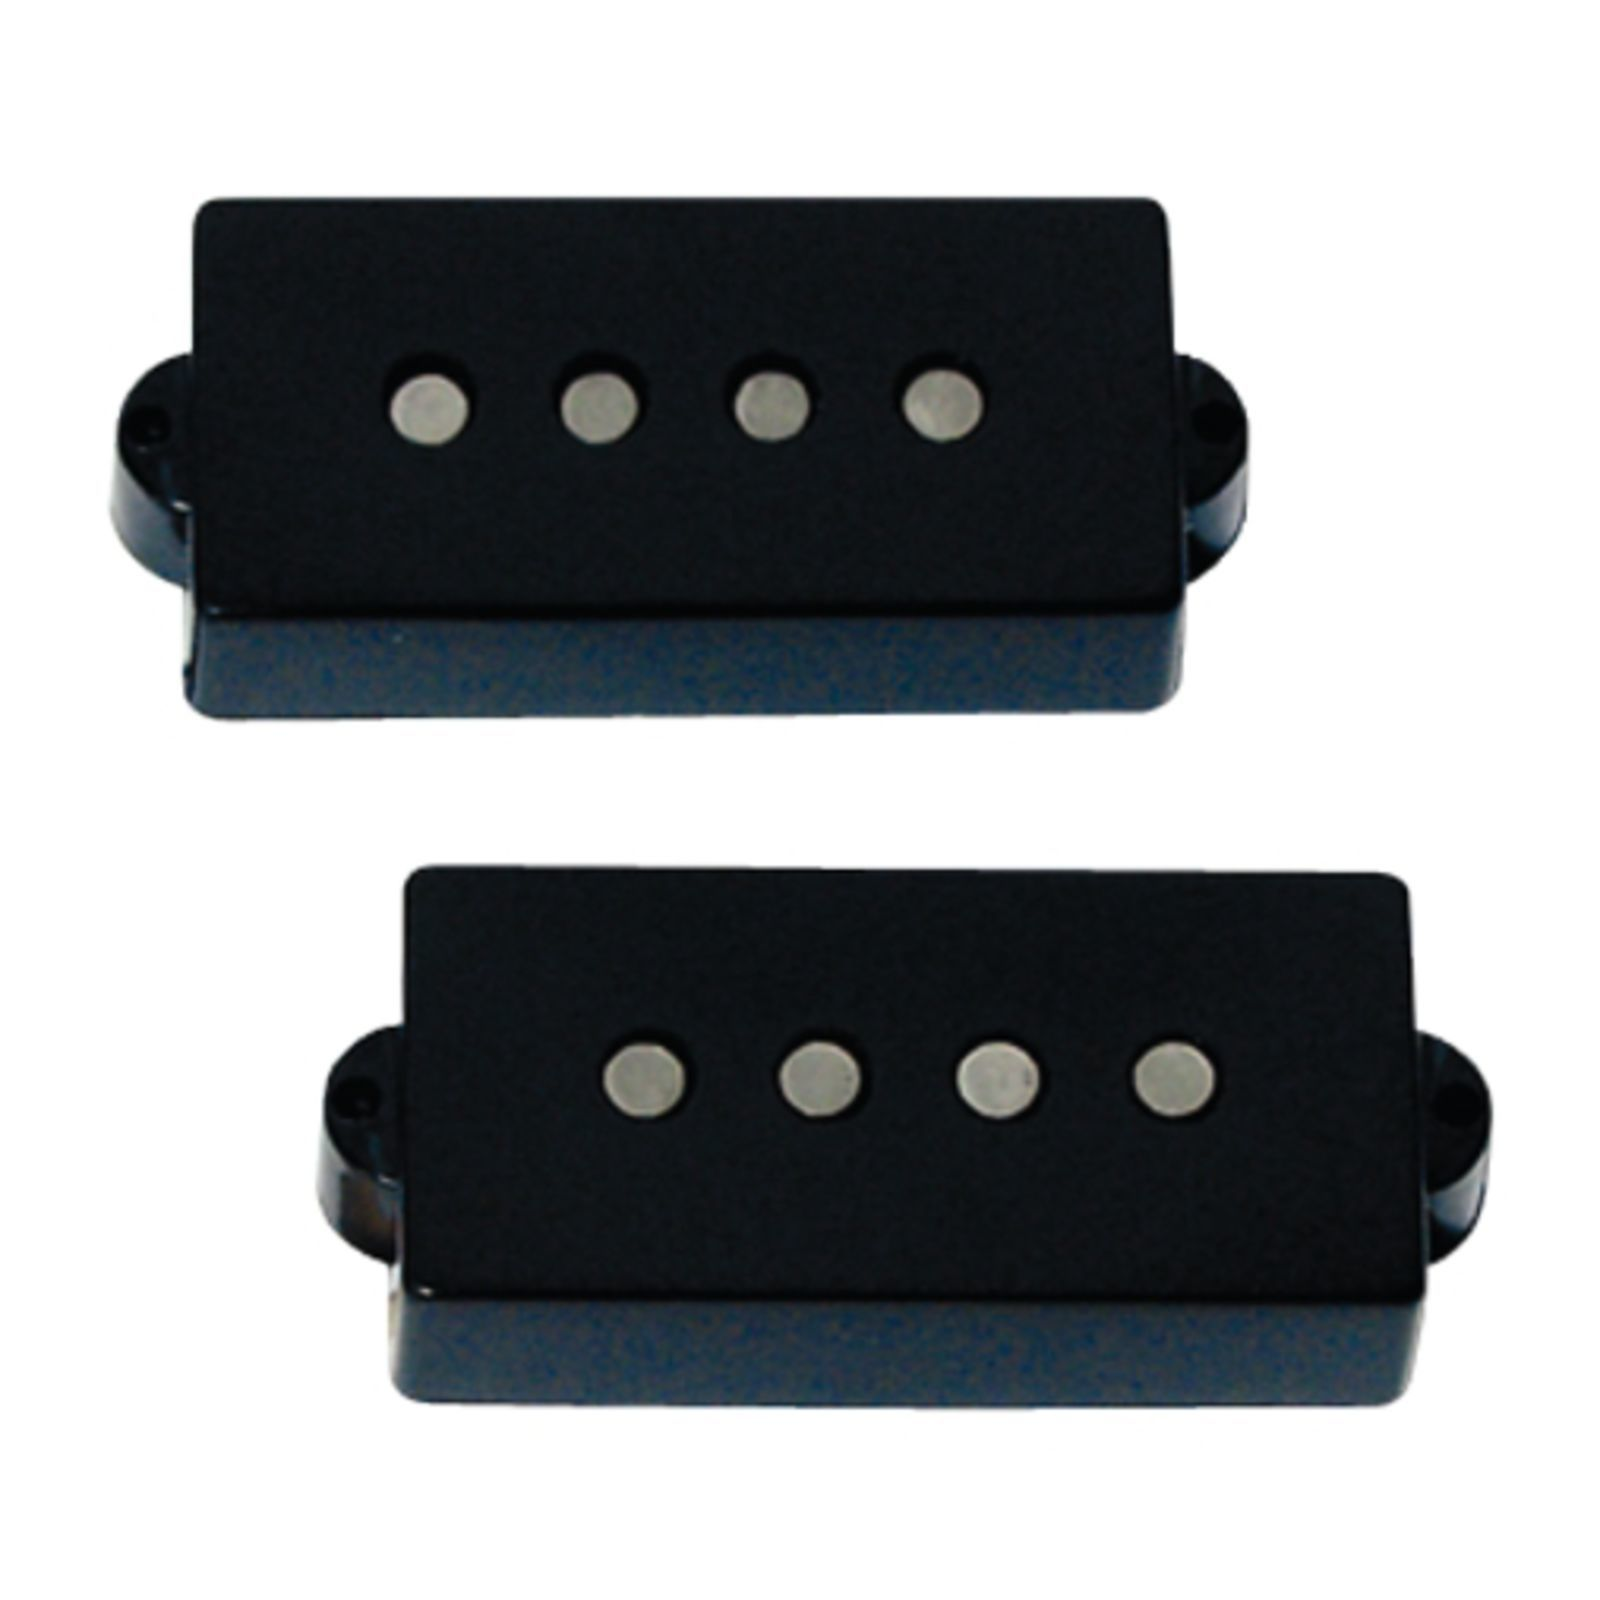 Seymour Duncan SSPB-1 Vintage P-Bass Black 2-phase Product Image